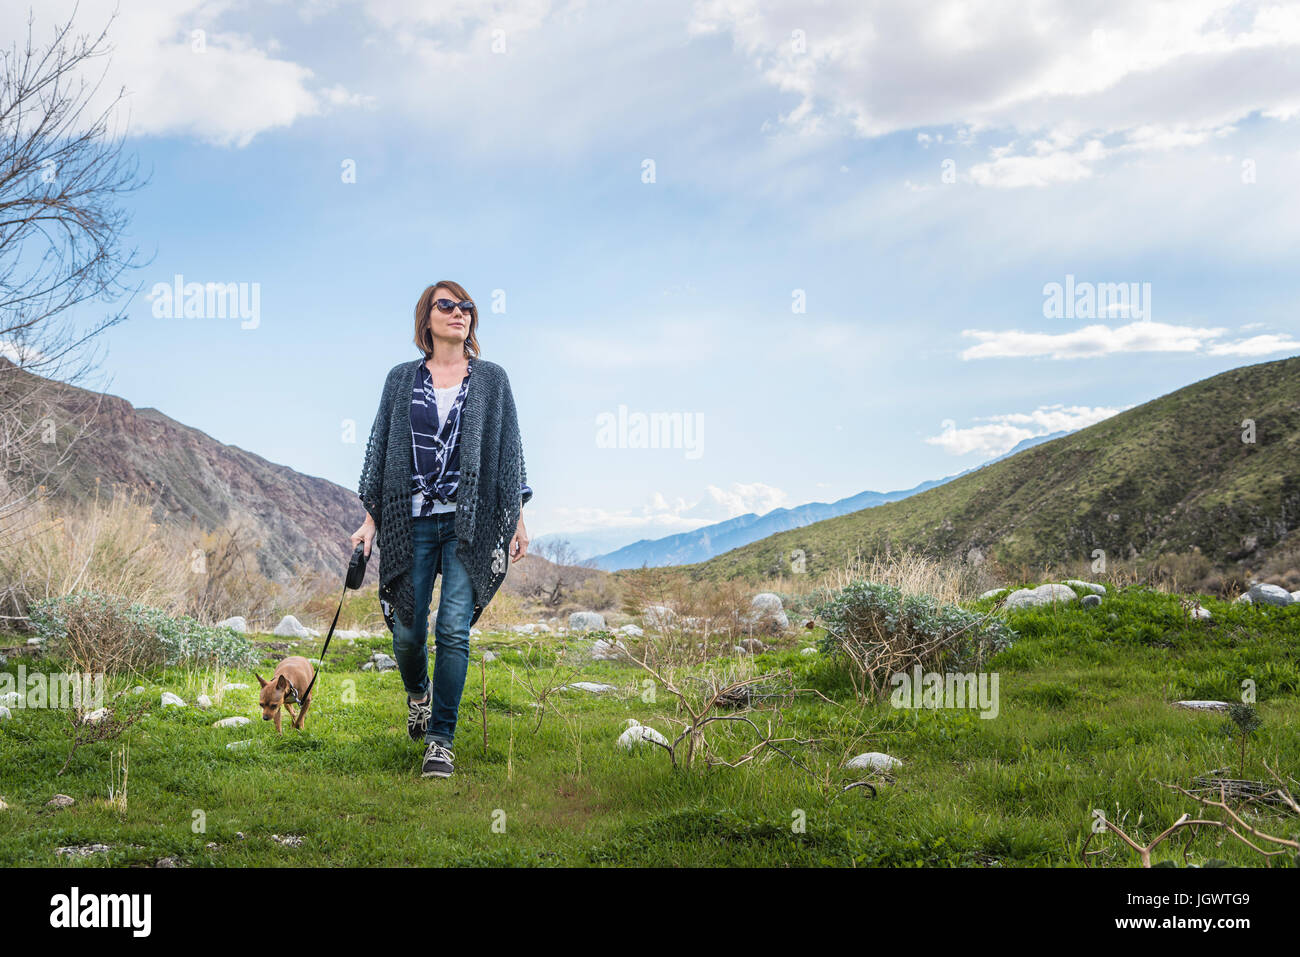 Mature woman walking dog in valley landscape - Stock Image